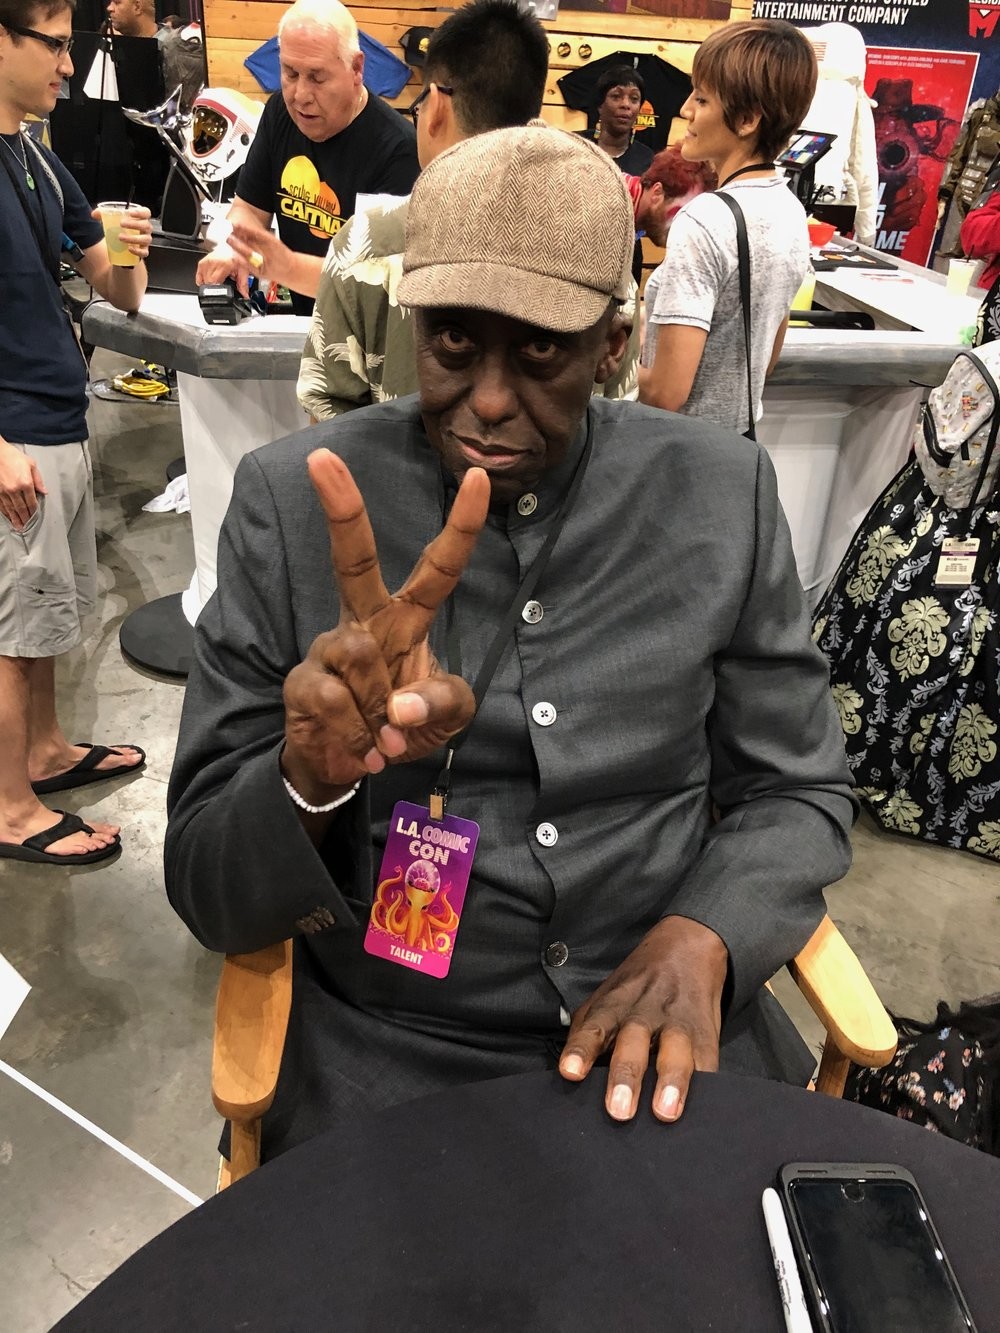 IMG_1618 MANDY CELEBRITY BILL DUKE.jpg